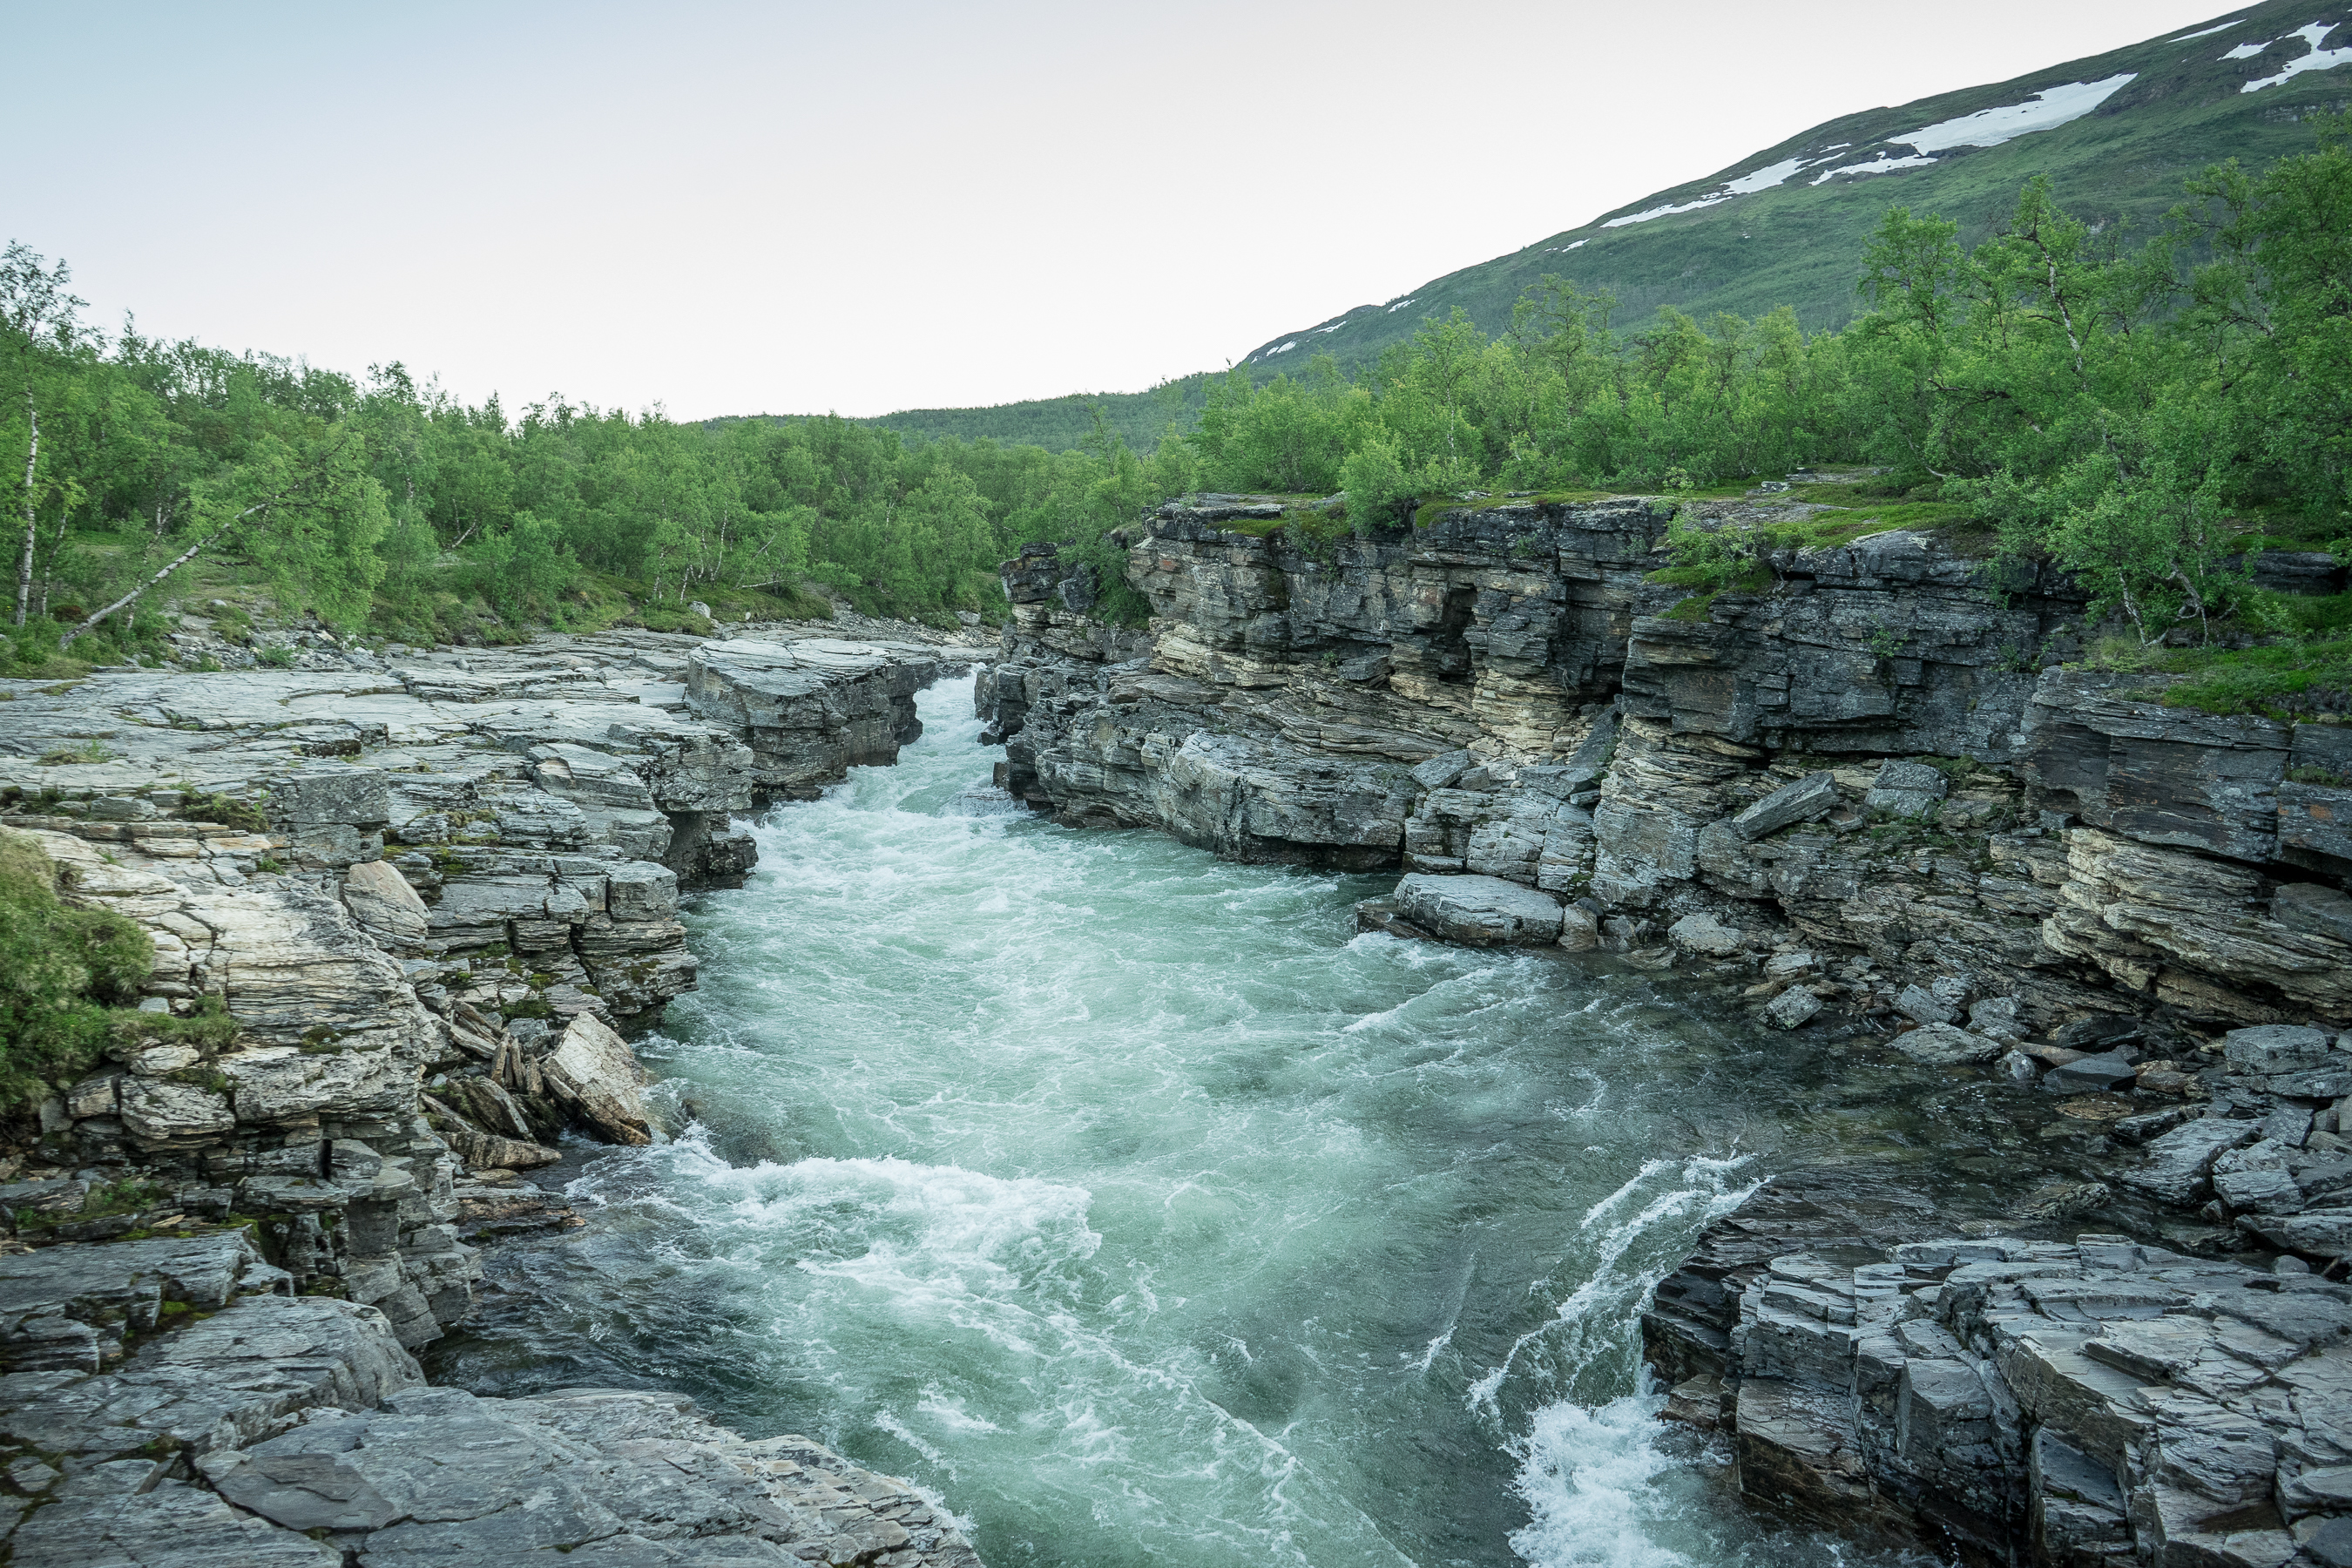 Chapter 3 – Kungsleden, part I | Everywhere in Particular